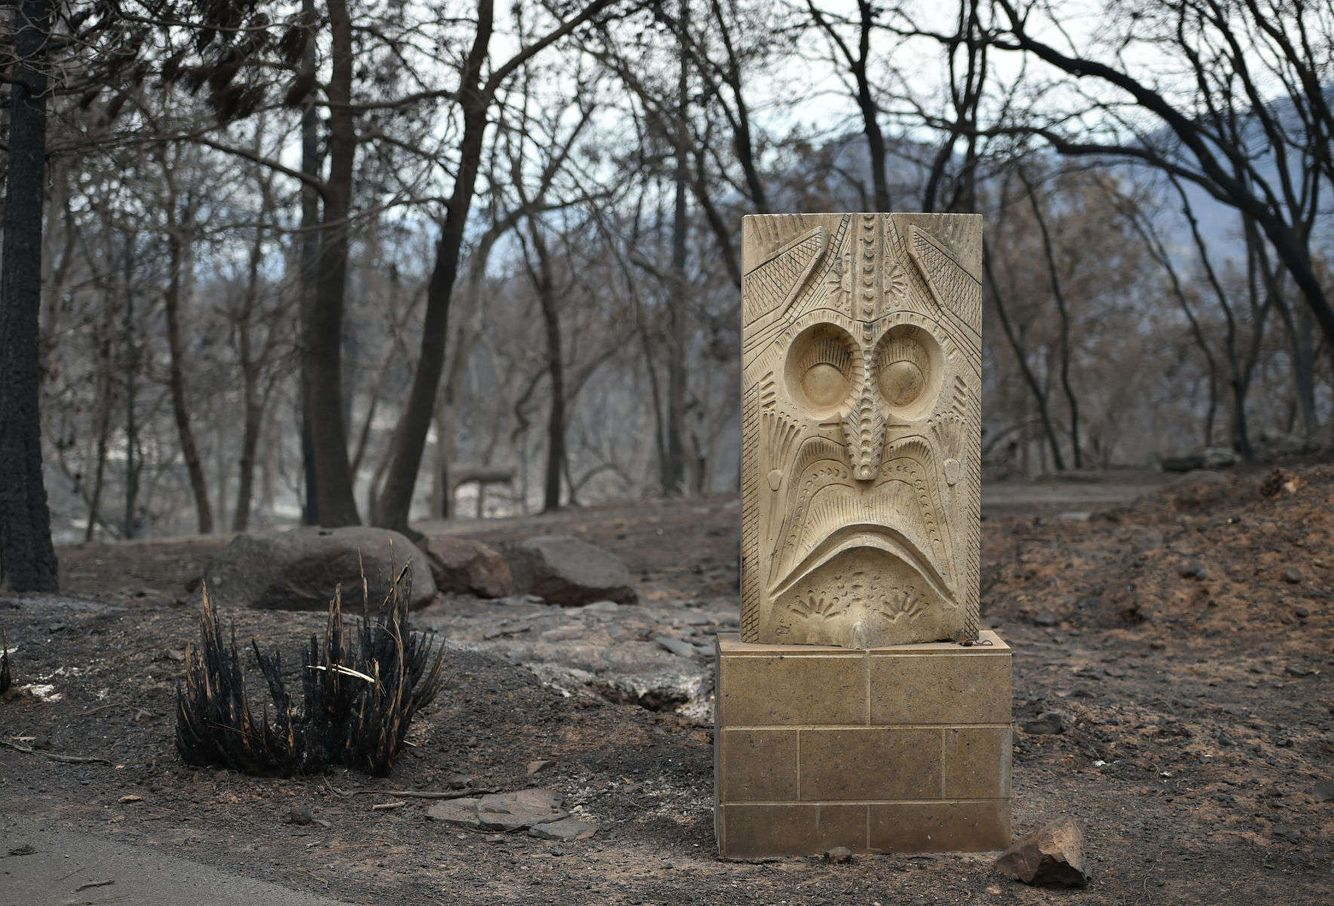 A stone statue is all that remains after the Valley fire tore through a residential neighborhood